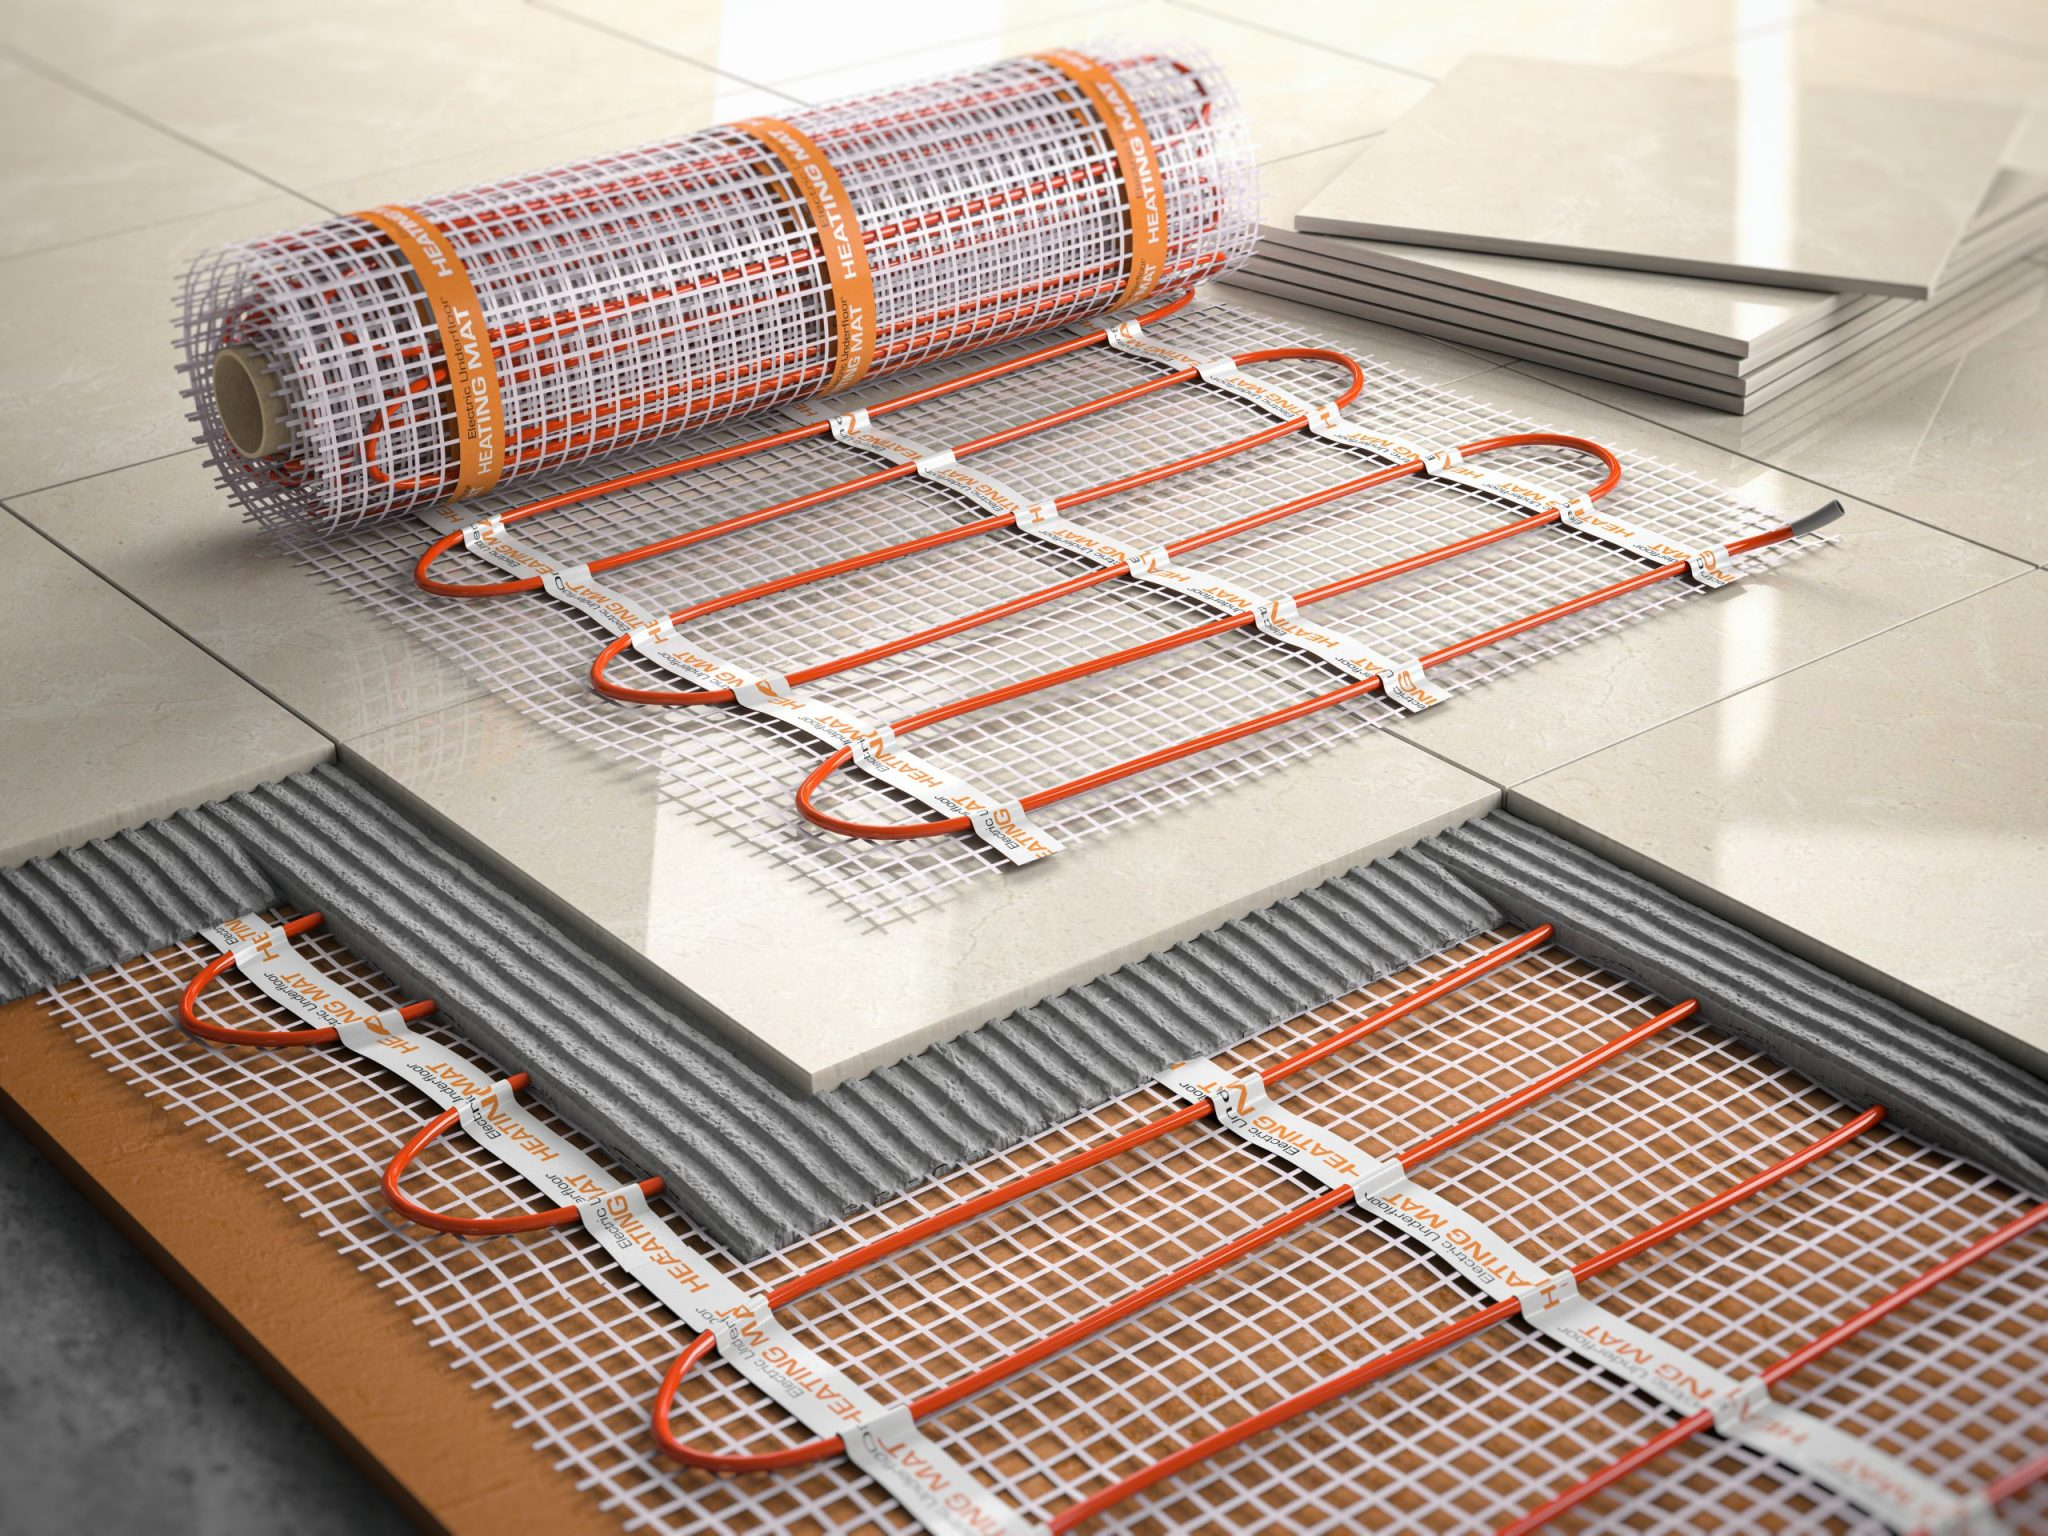 Underfloor heating installation with tiles pulled up